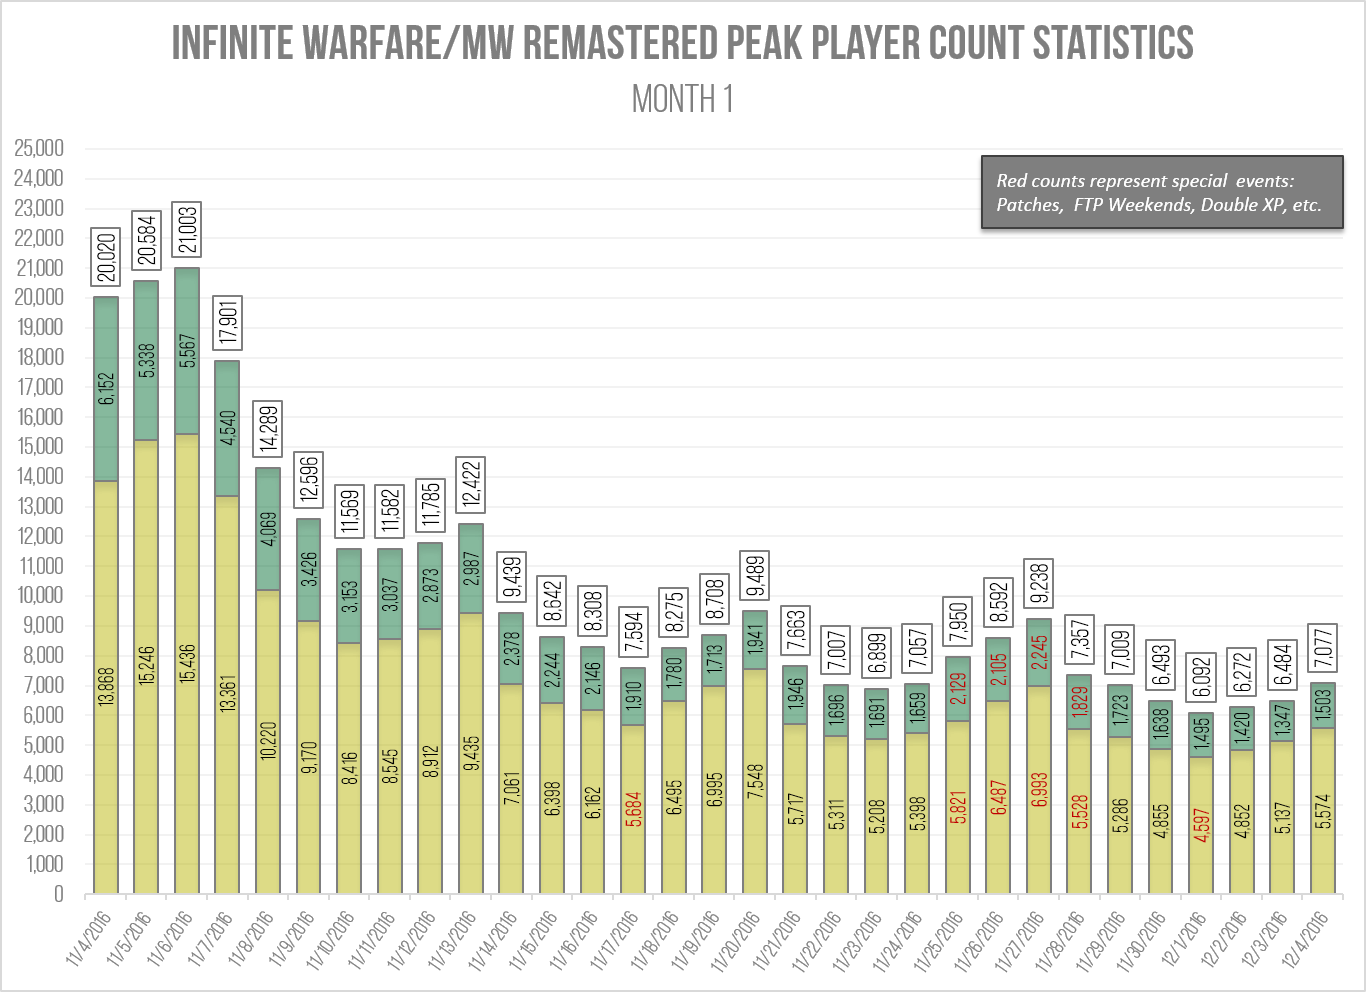 Infinite Warfare / MW Remastered Peak Player Count History